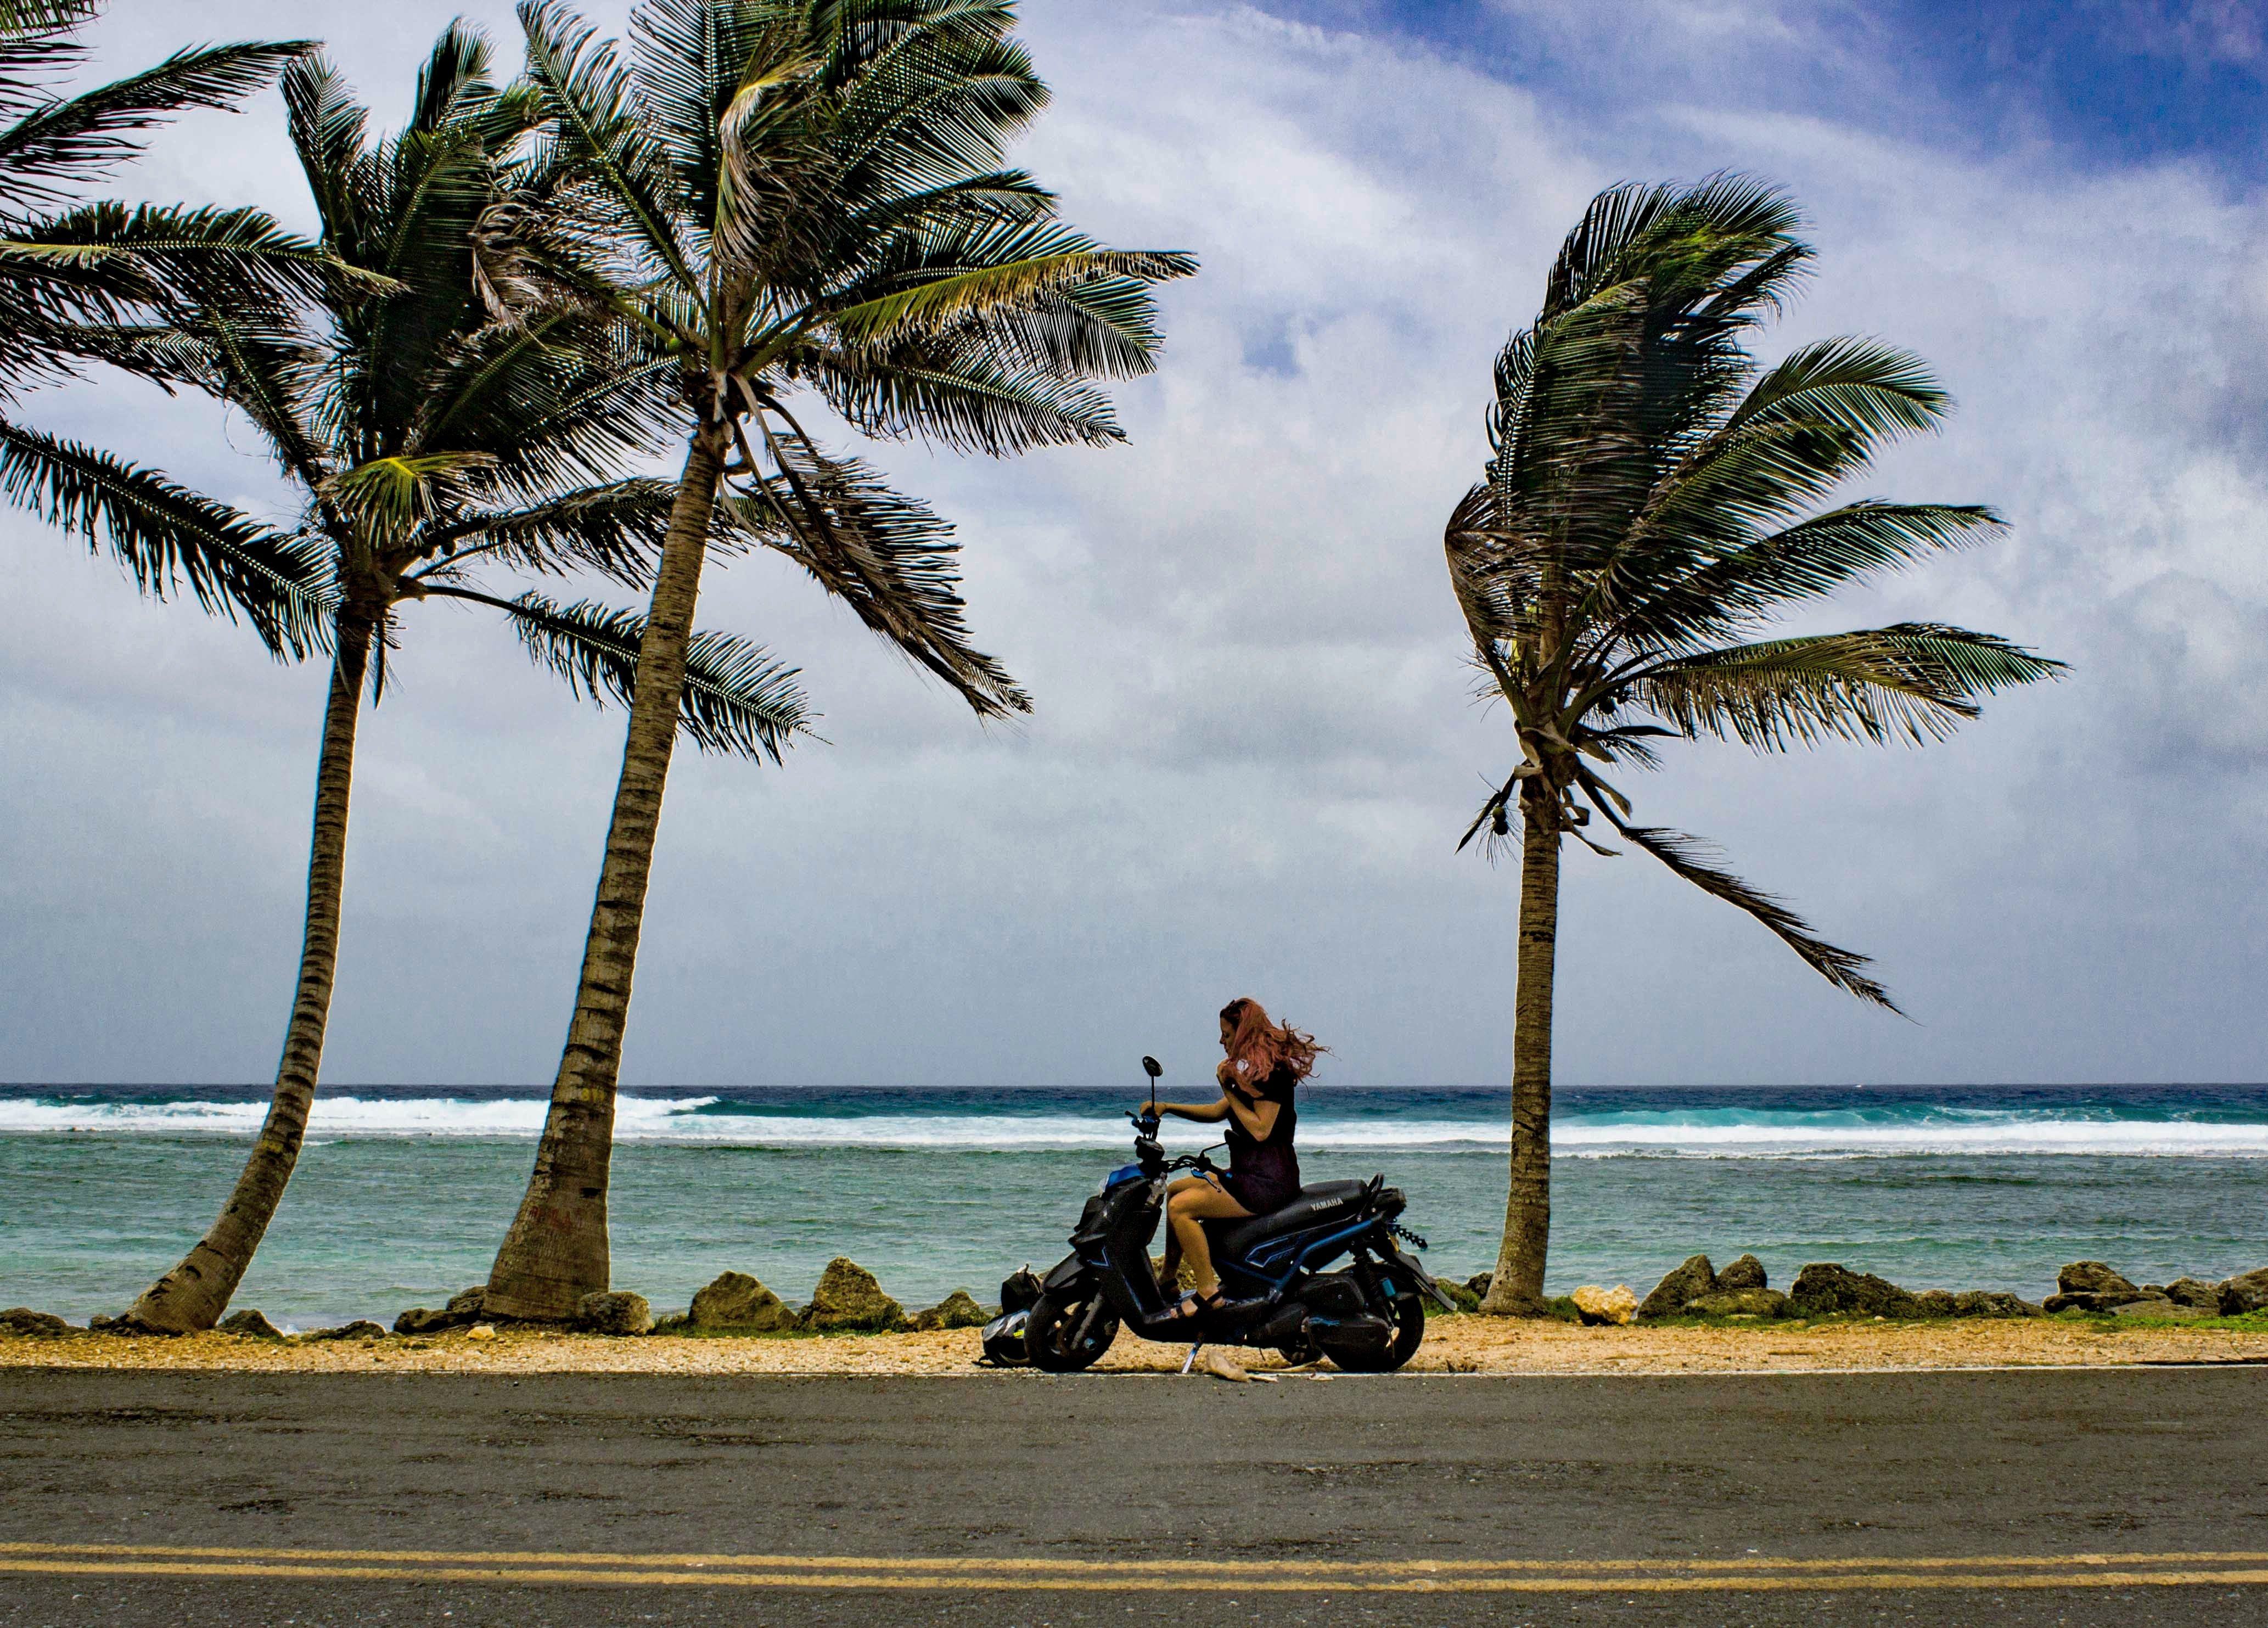 san andres island guide: renting a scooter on san andres island